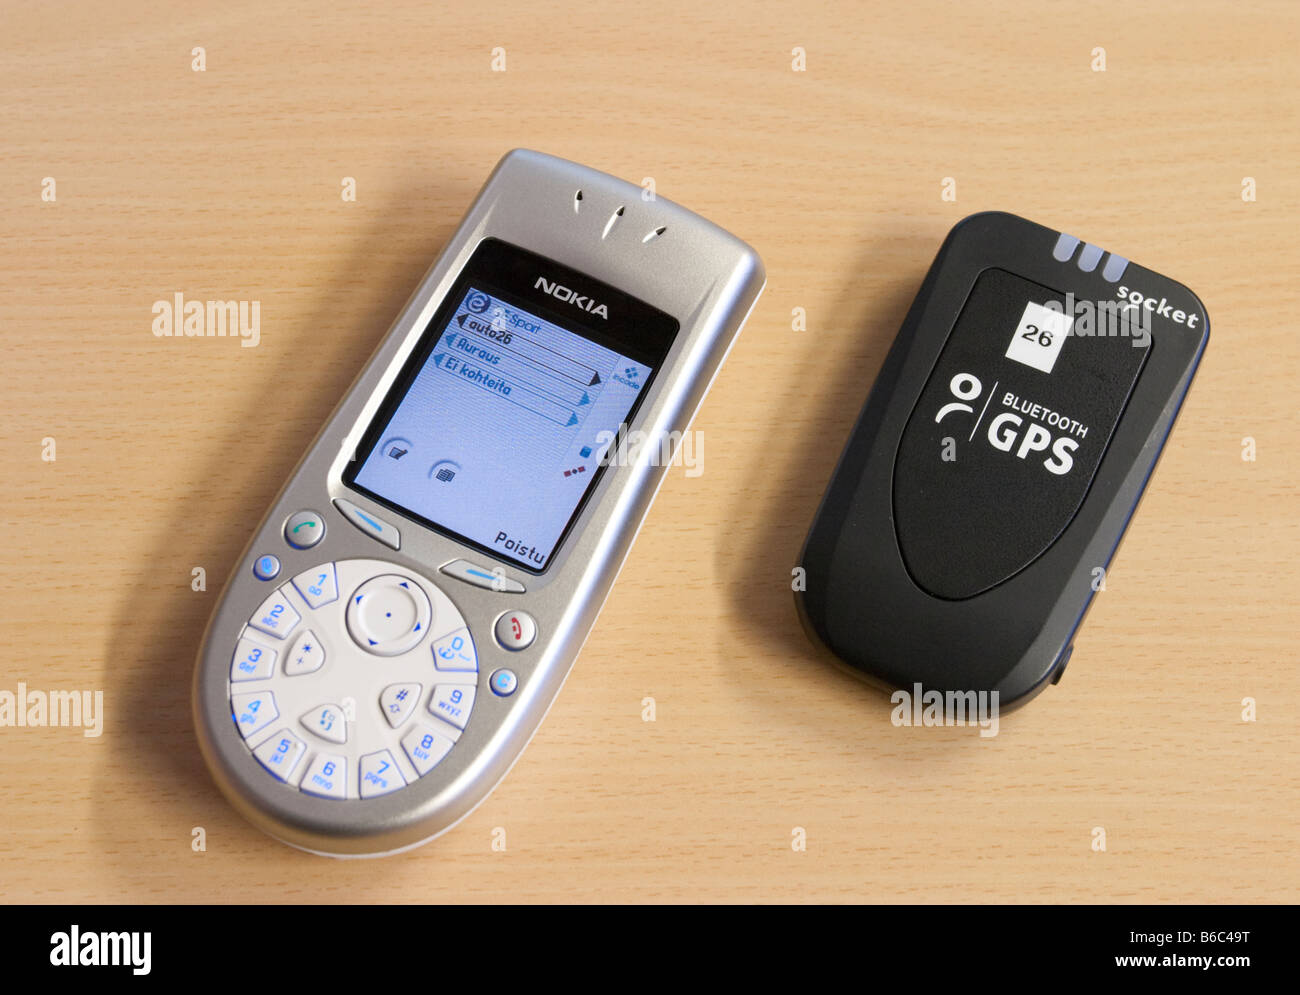 Nokia Mobile Stock Photos & Nokia Mobile Stock Images - Alamy